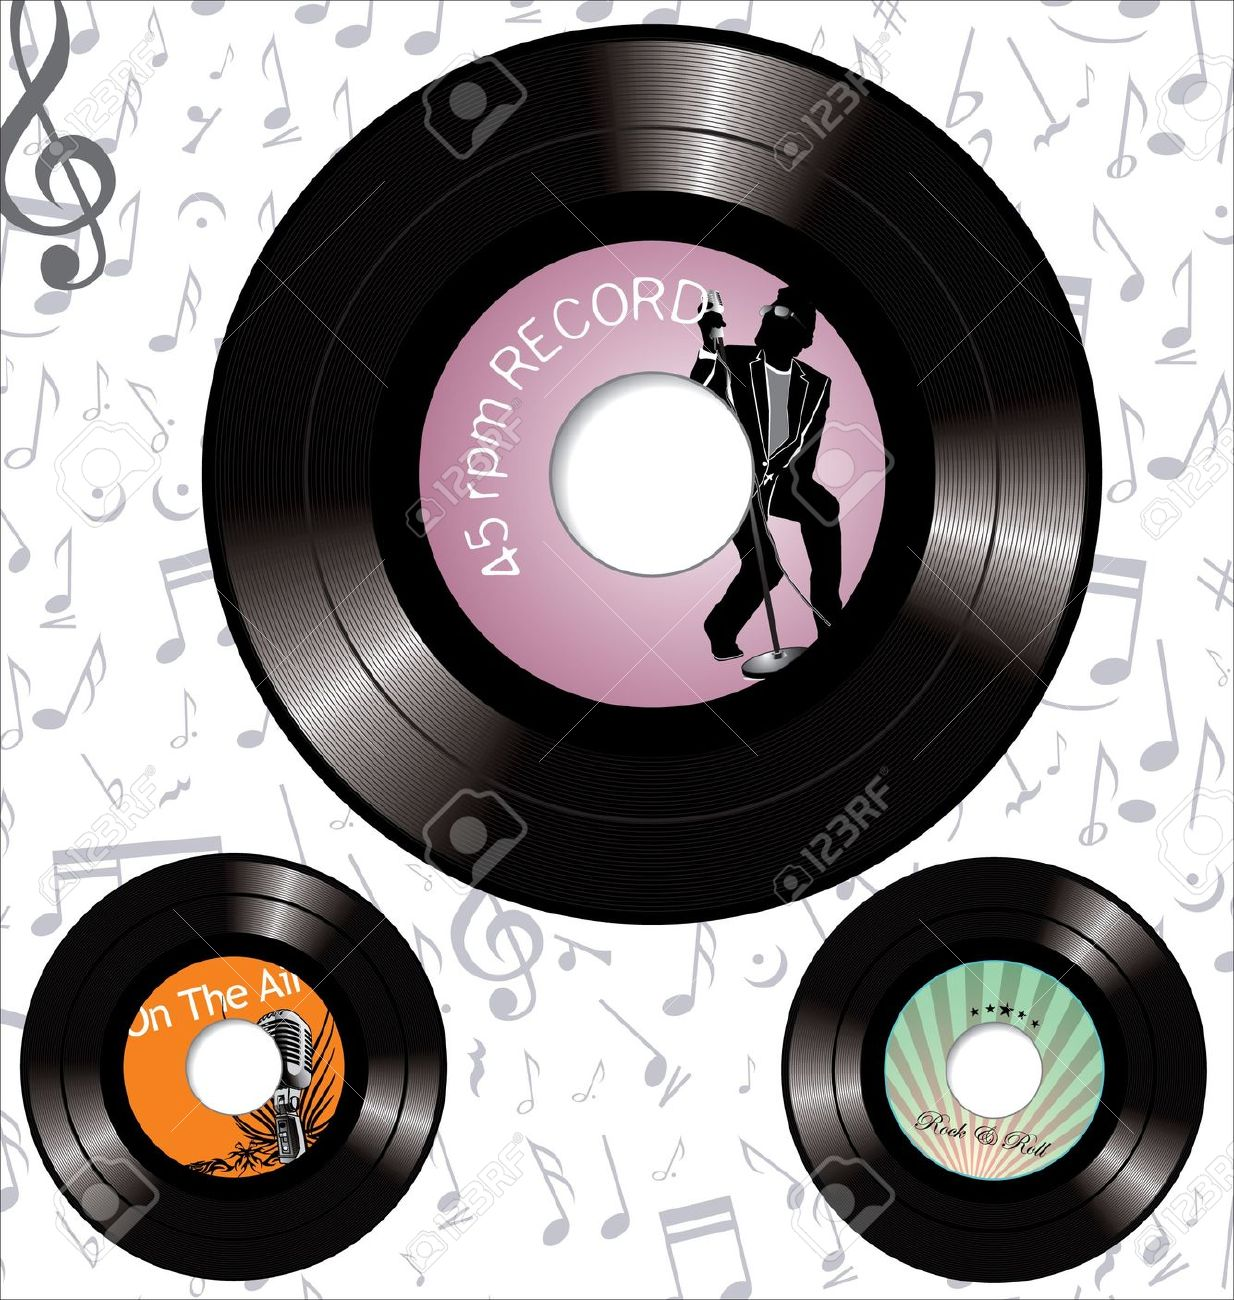 Oldies music clipart.